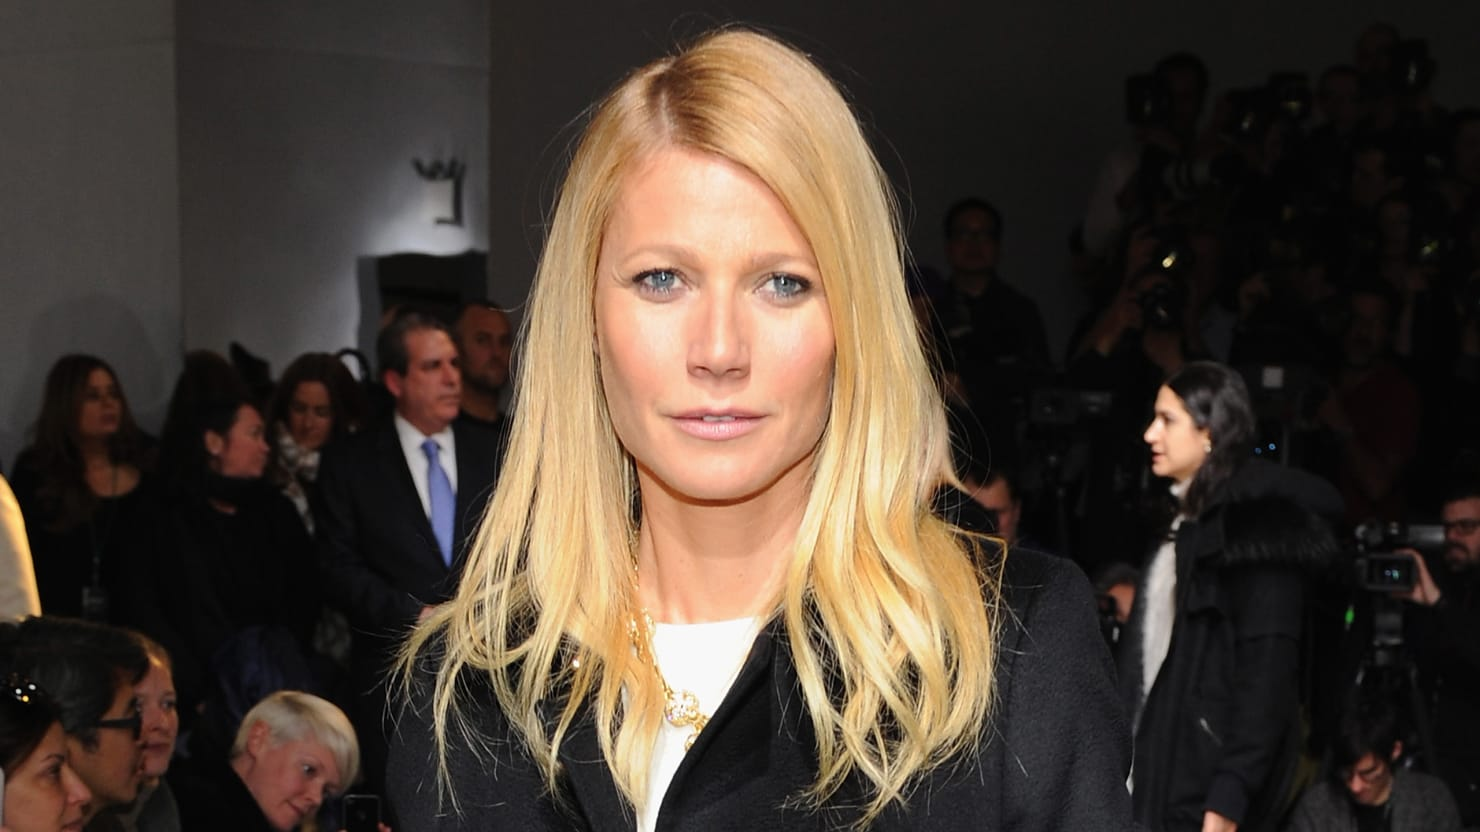 Gwyneth Paltrow Claims Water Has Feelings in Weird New BlogPost pics